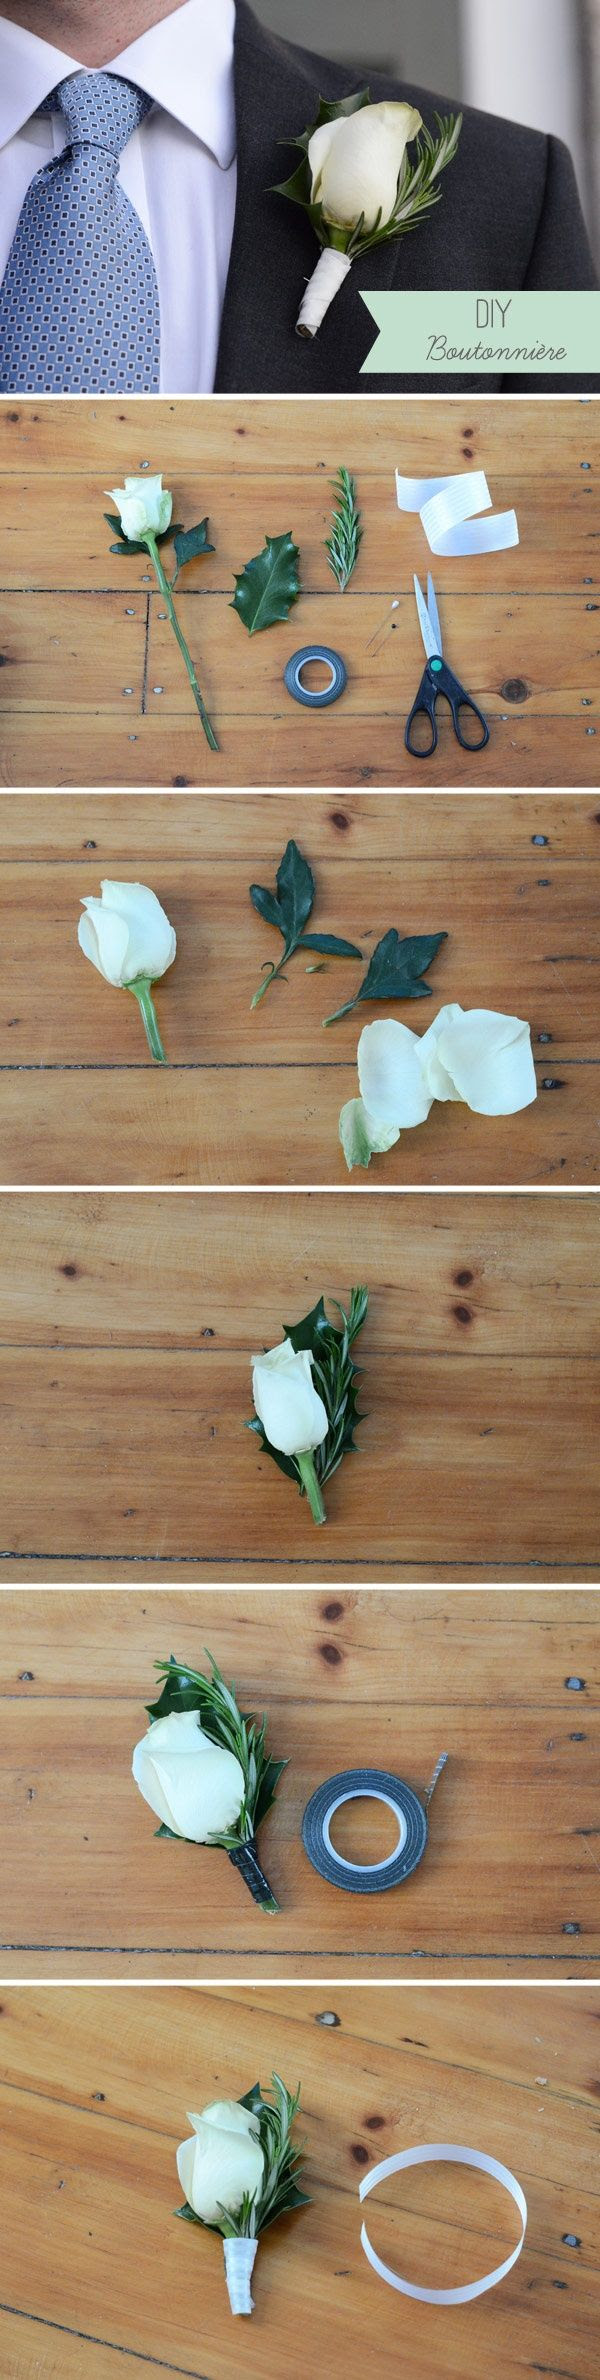 How to make a DIY Boutonniere for your wedding